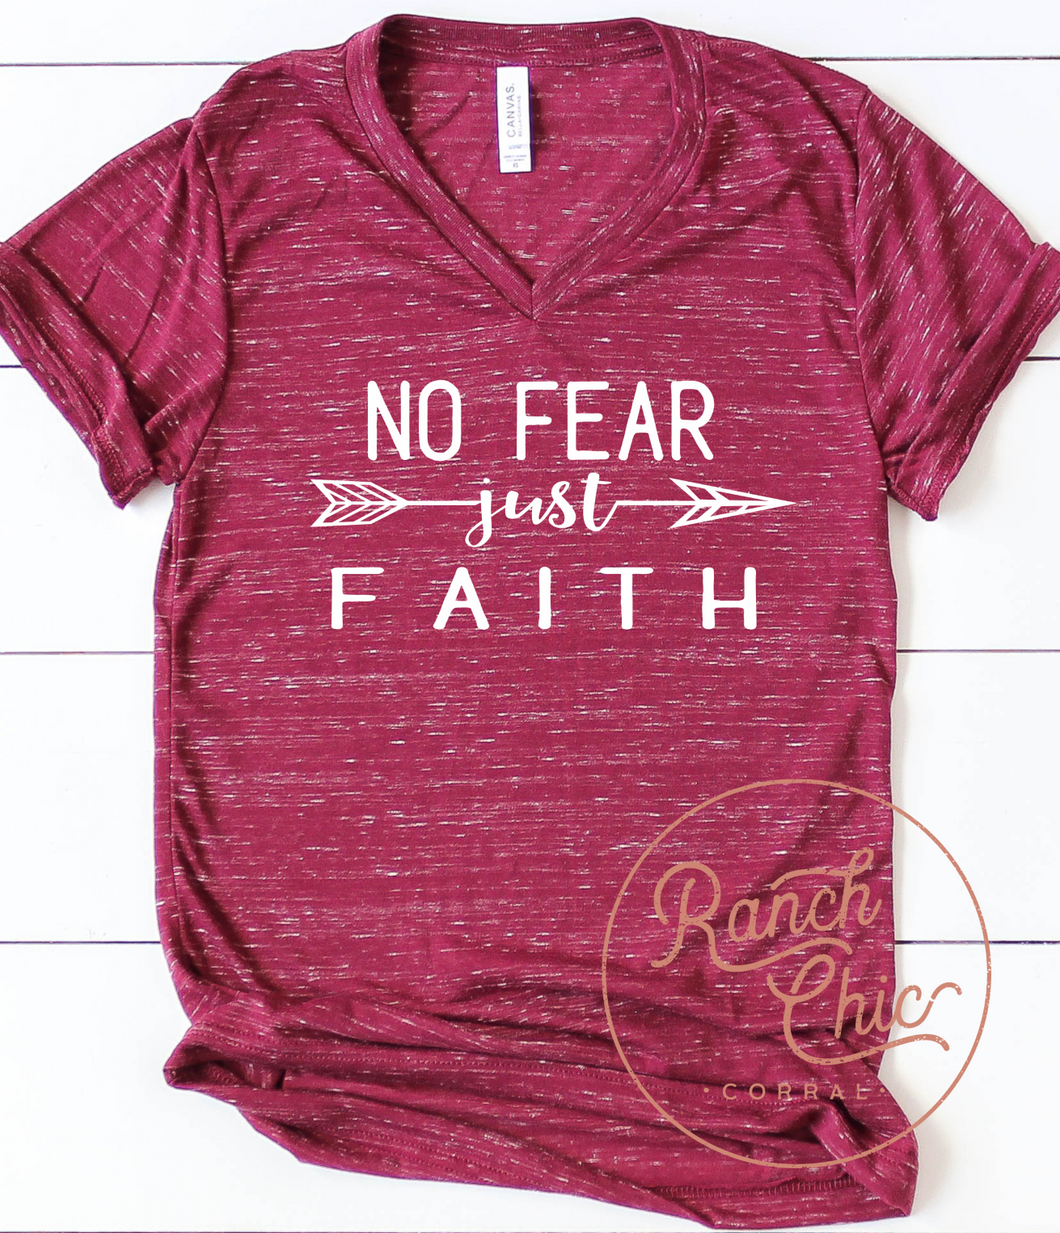 Wednesday Nov. 4th: No Fear Just Faith